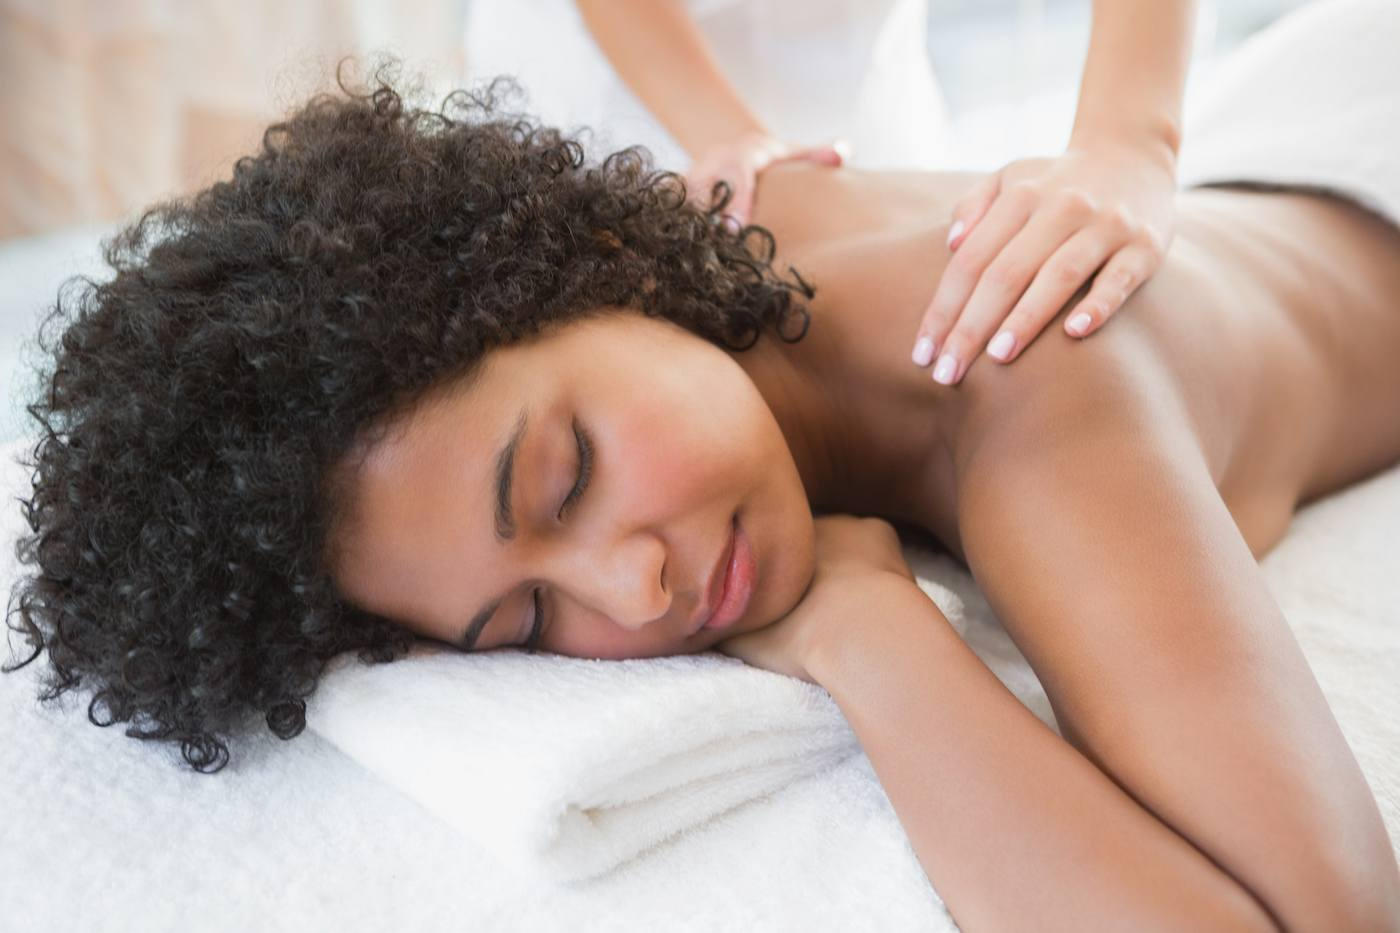 Your stomach growling during a massage is normal | Well+Good